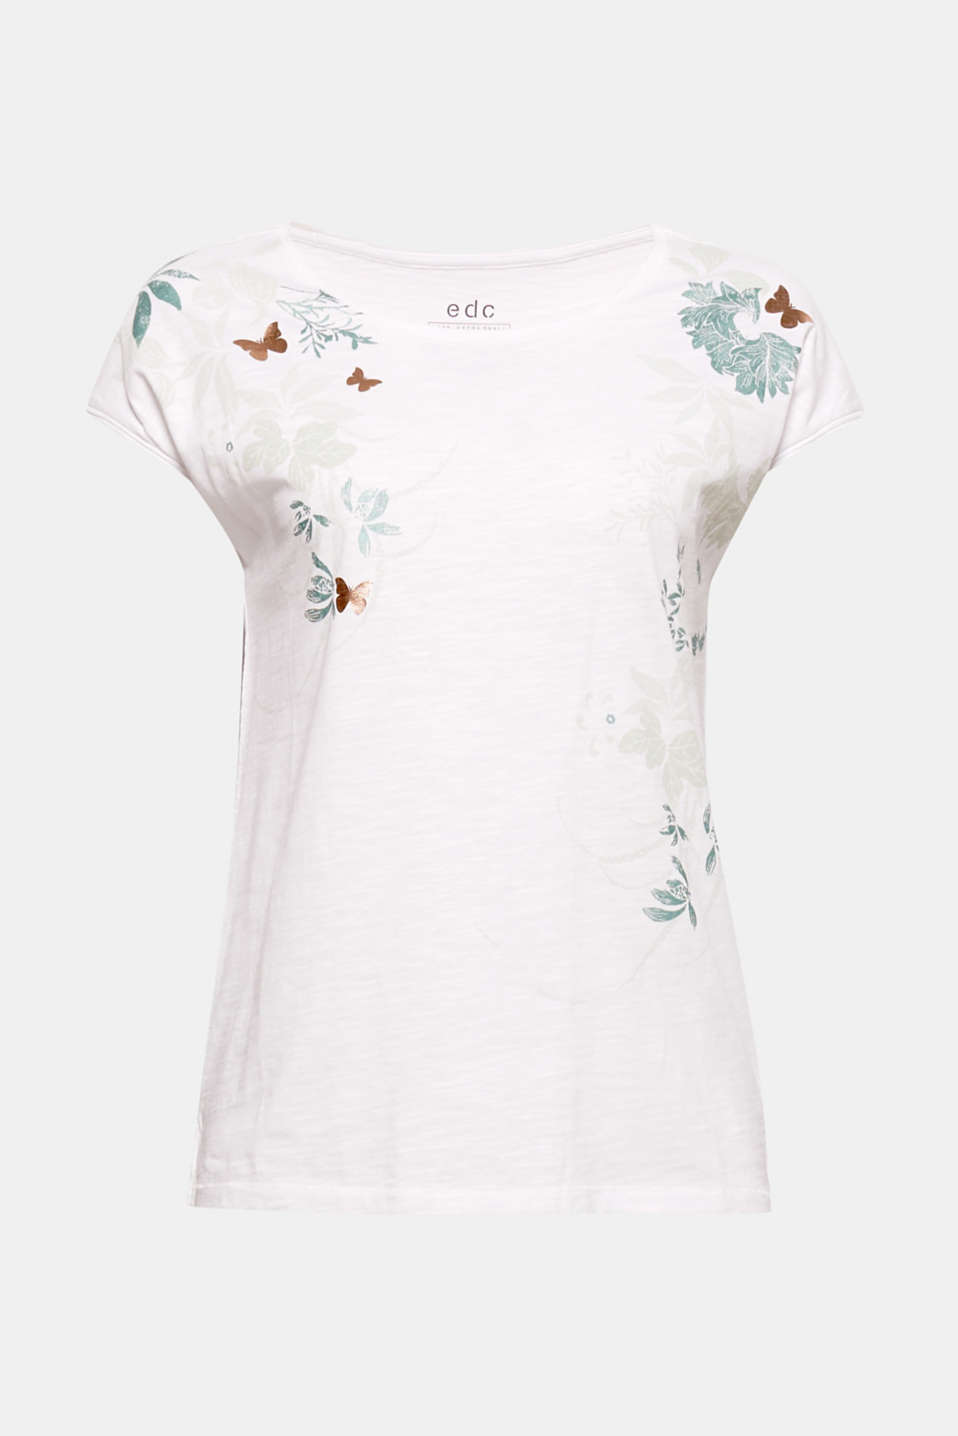 This soft cotton T-shirt with curled edges is decorated with shiny butterflies and colourful leaves.